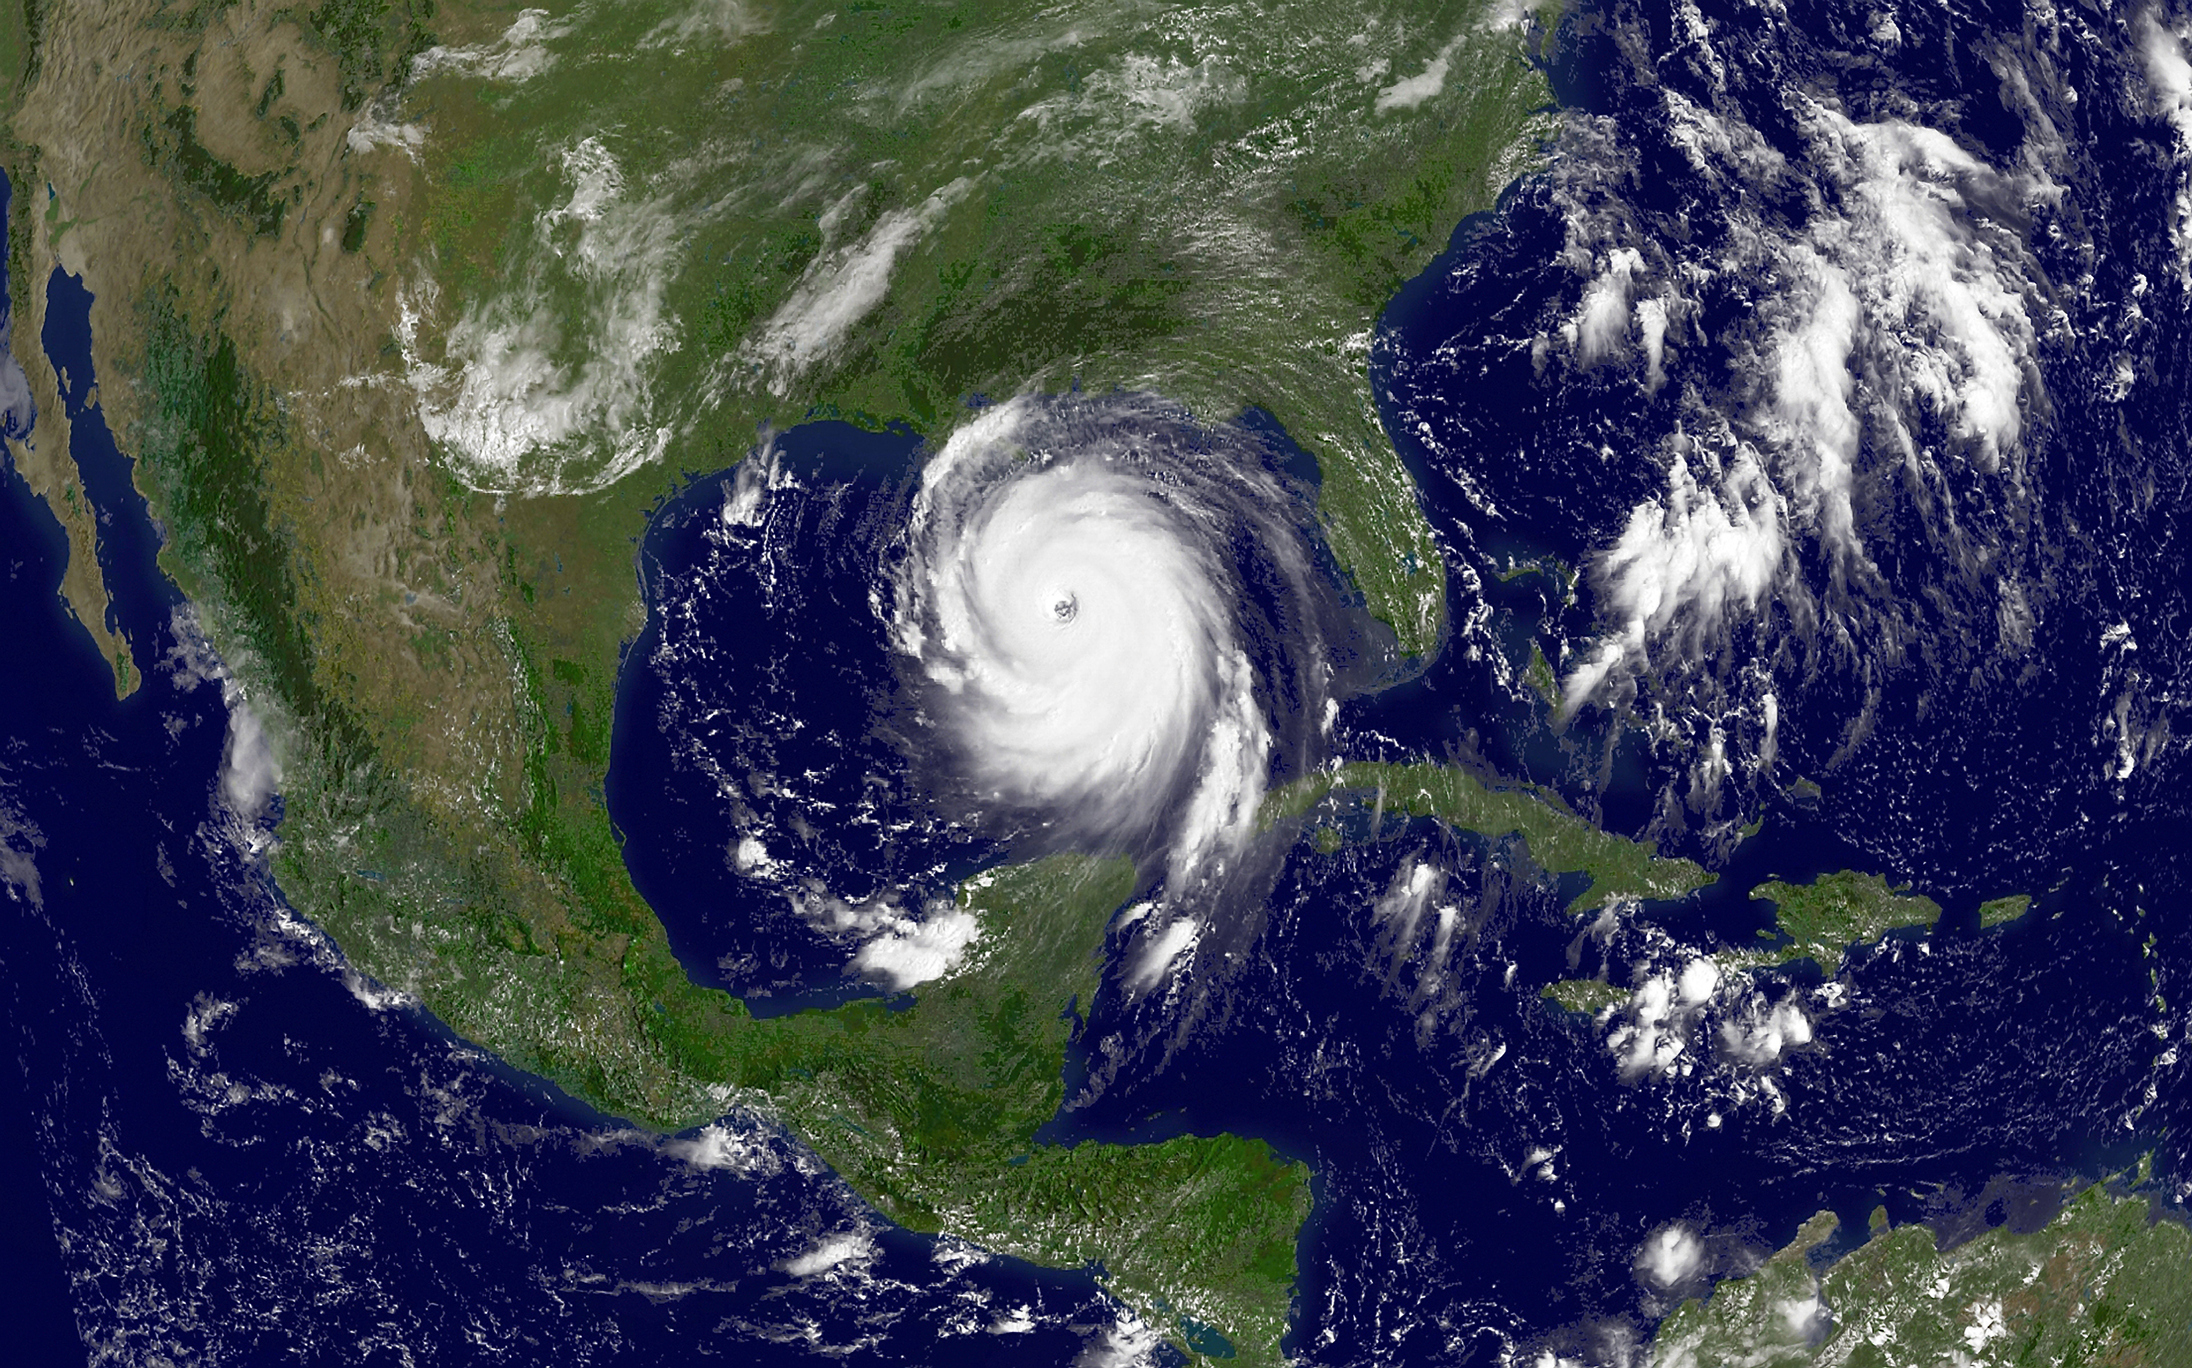 Hurricane Katrina in the Gulf of Mexico on Aug. 28, 2005.